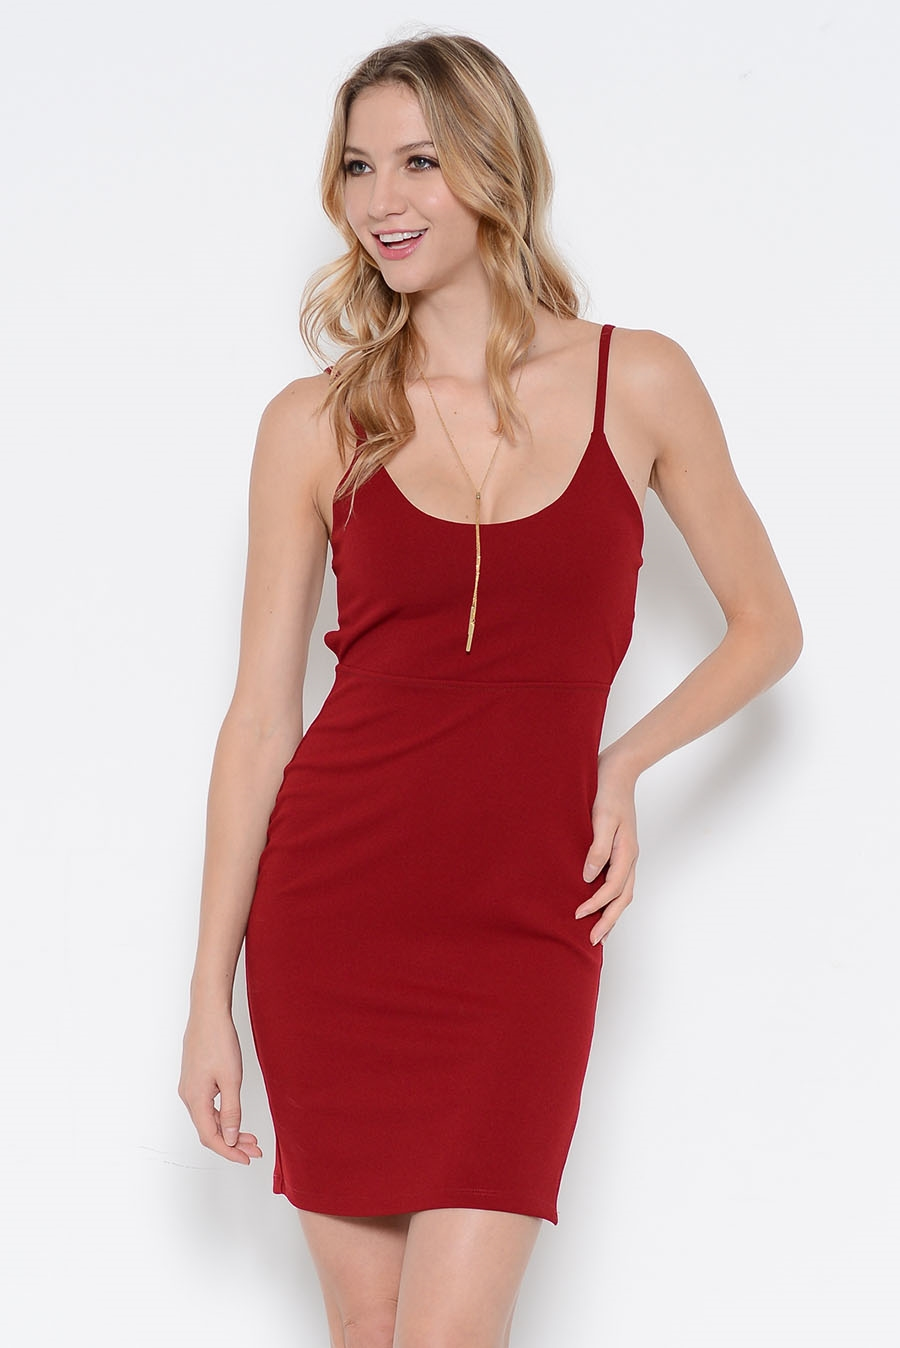 KNIT STRAPPY BACK DRESS - orangeshine.com